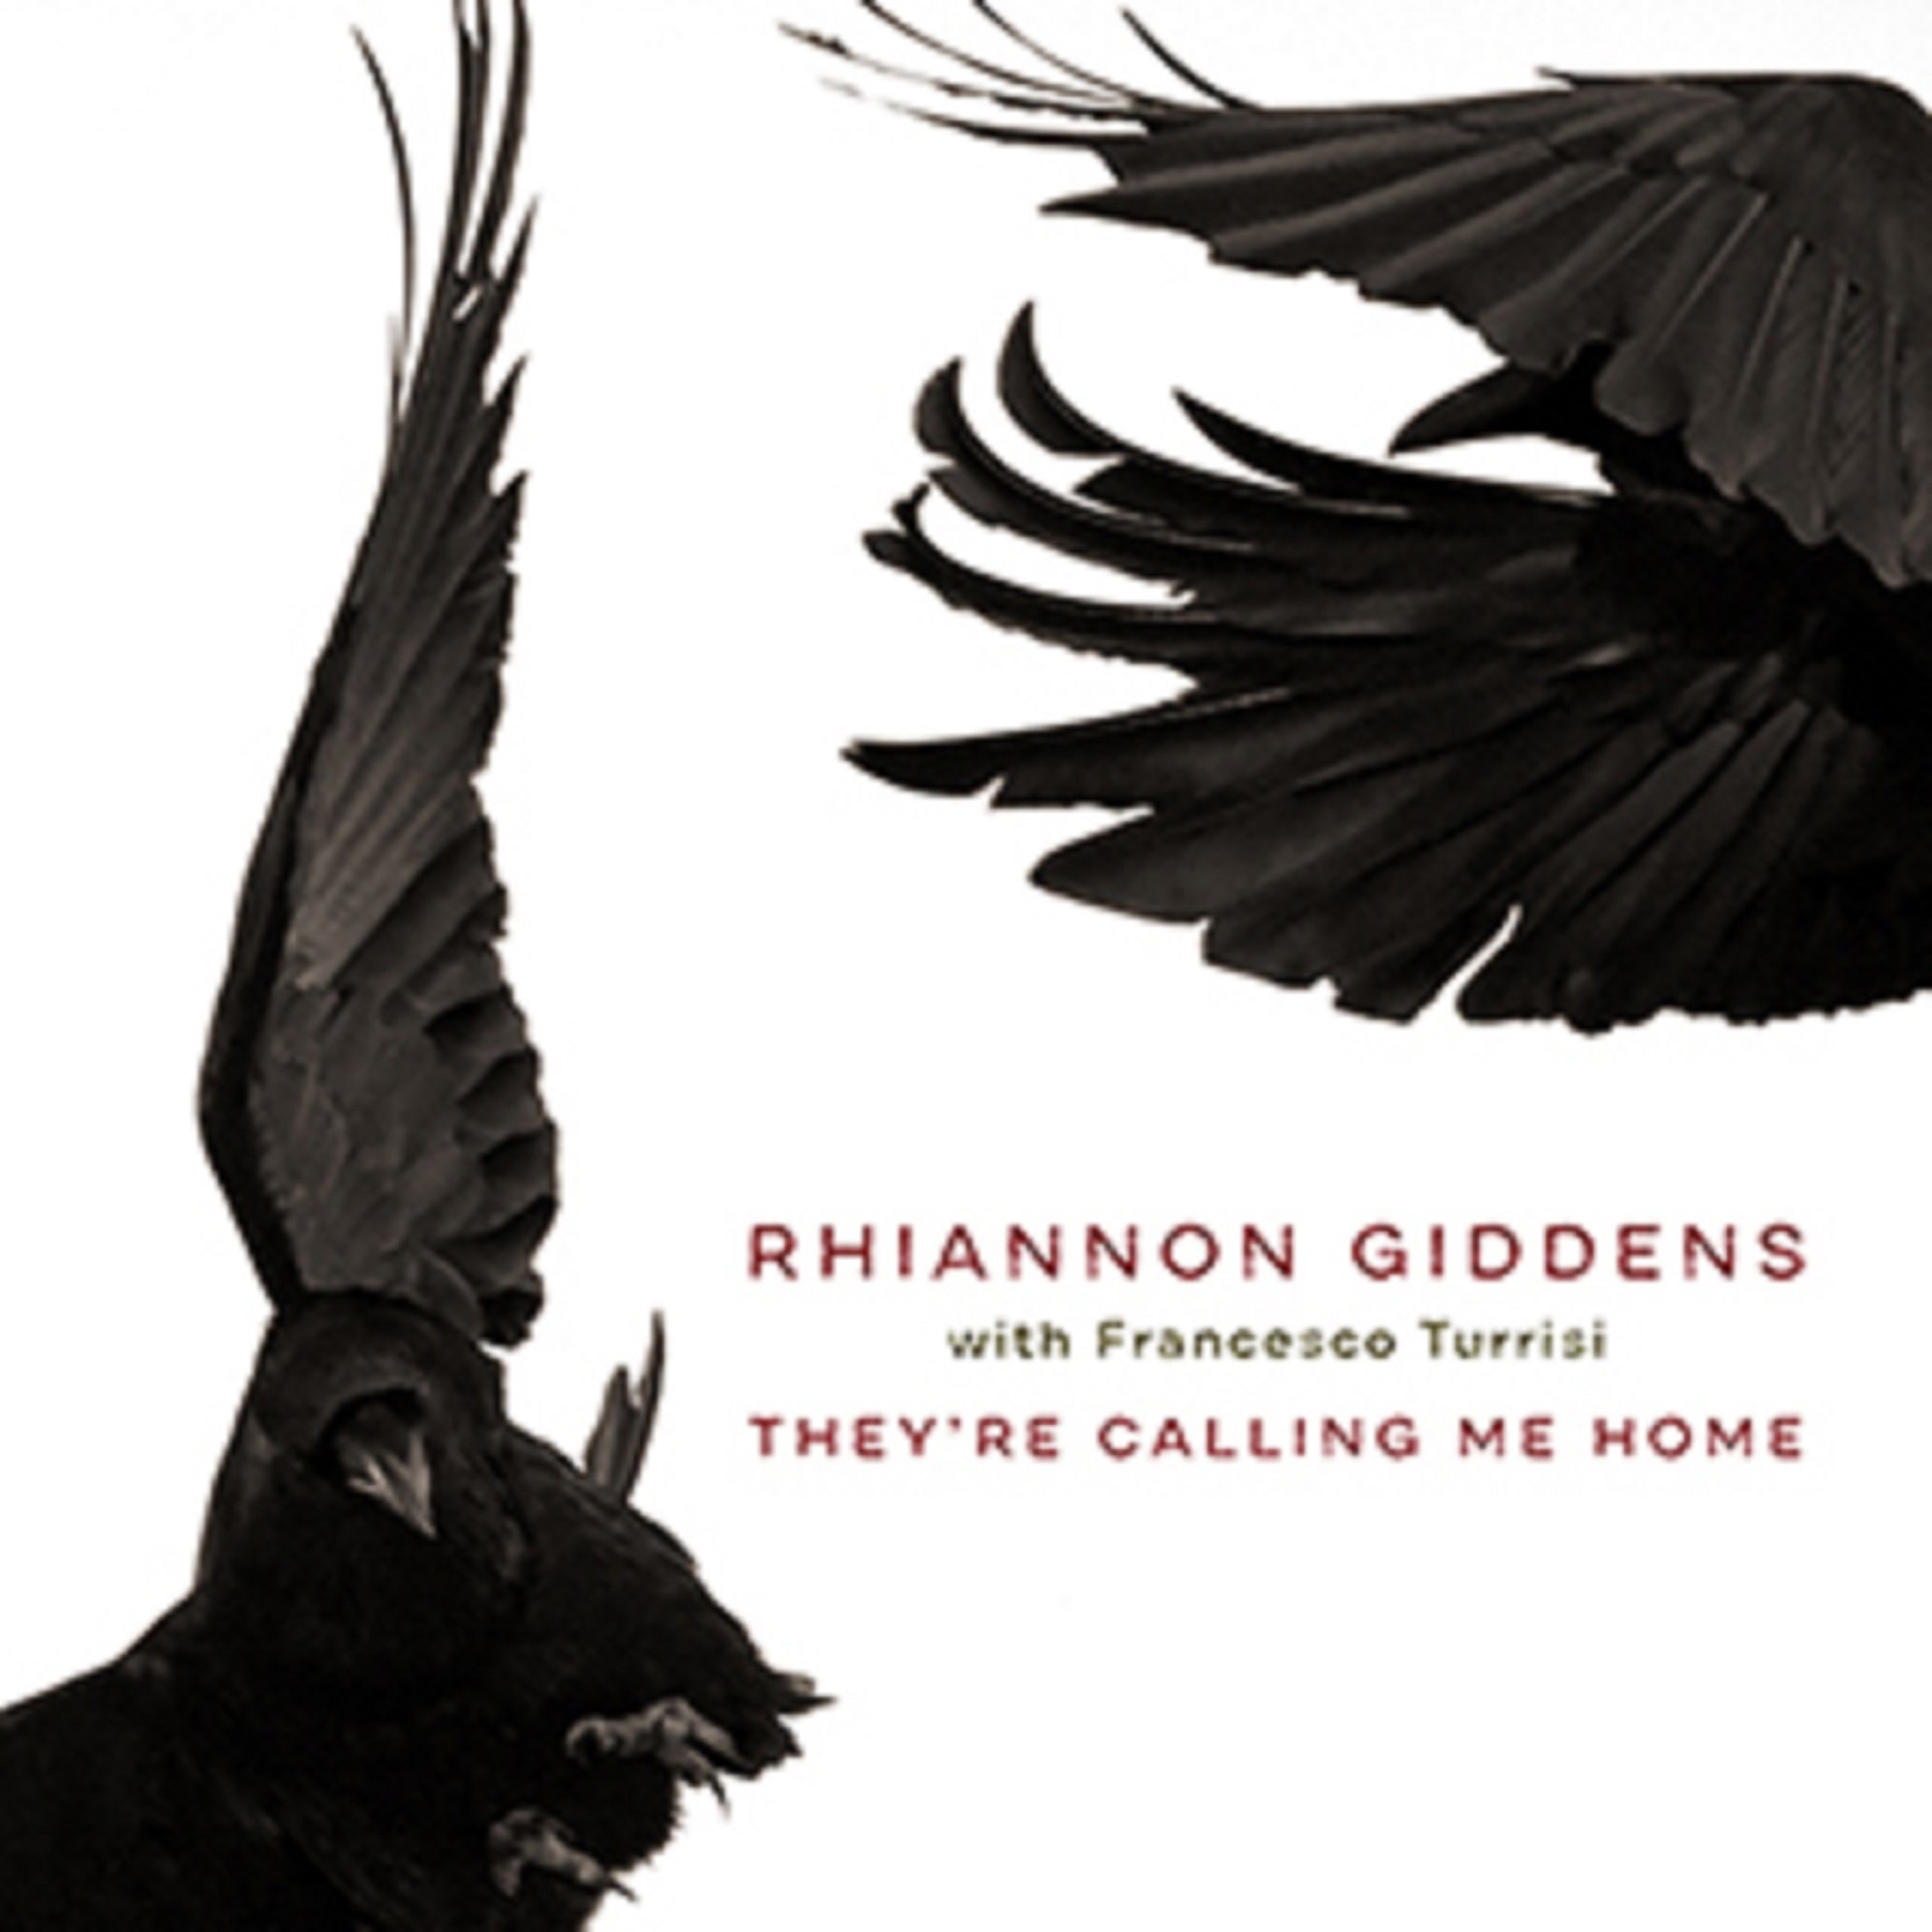 Rhiannon Giddens Announces New Album, They're Calling Me Home, Out April 9